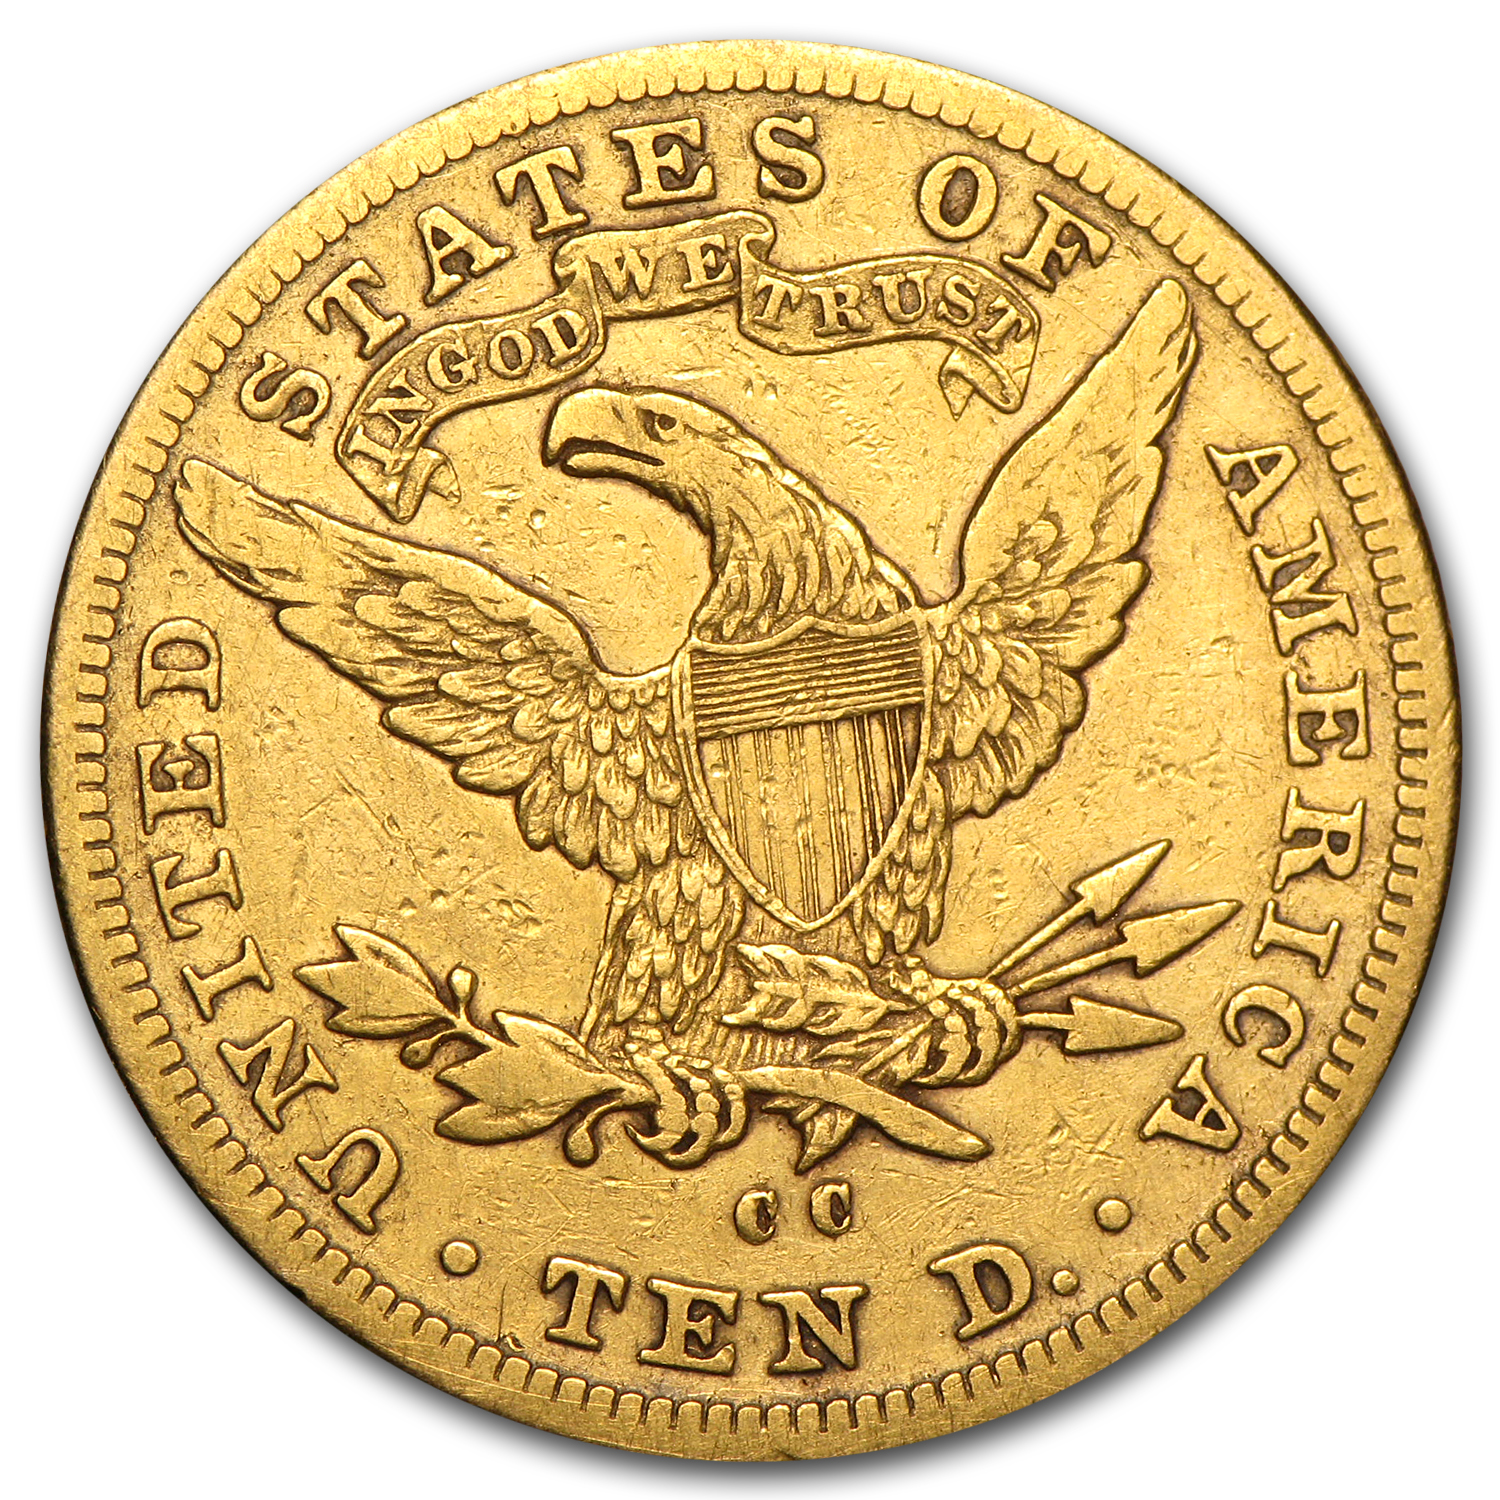 1891-CC $10 Liberty Gold Eagle - VF Details - (Cleaned)